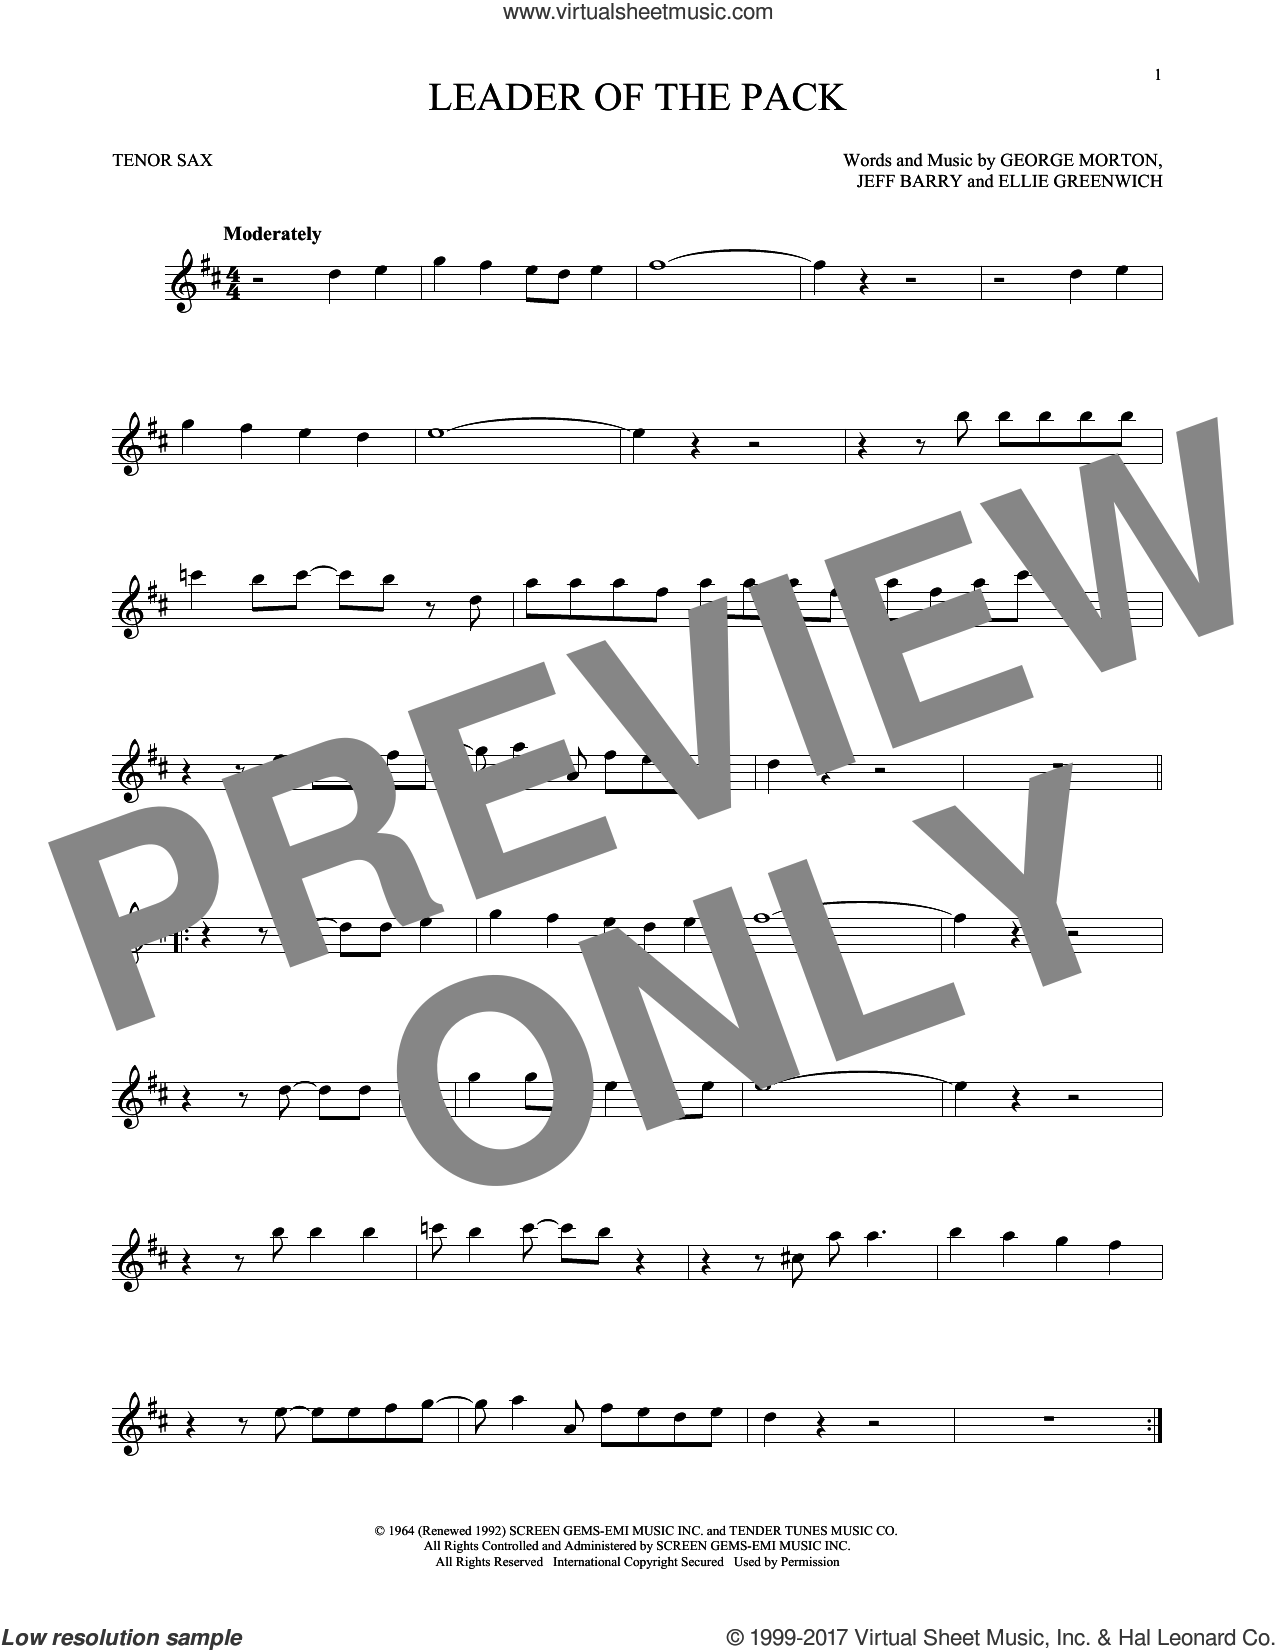 Leader Of The Pack sheet music for tenor saxophone solo ( Sax) by The Shangri-Las, Ellie Greenwich, George Morton and Jeff Barry, intermediate tenor saxophone ( Sax)